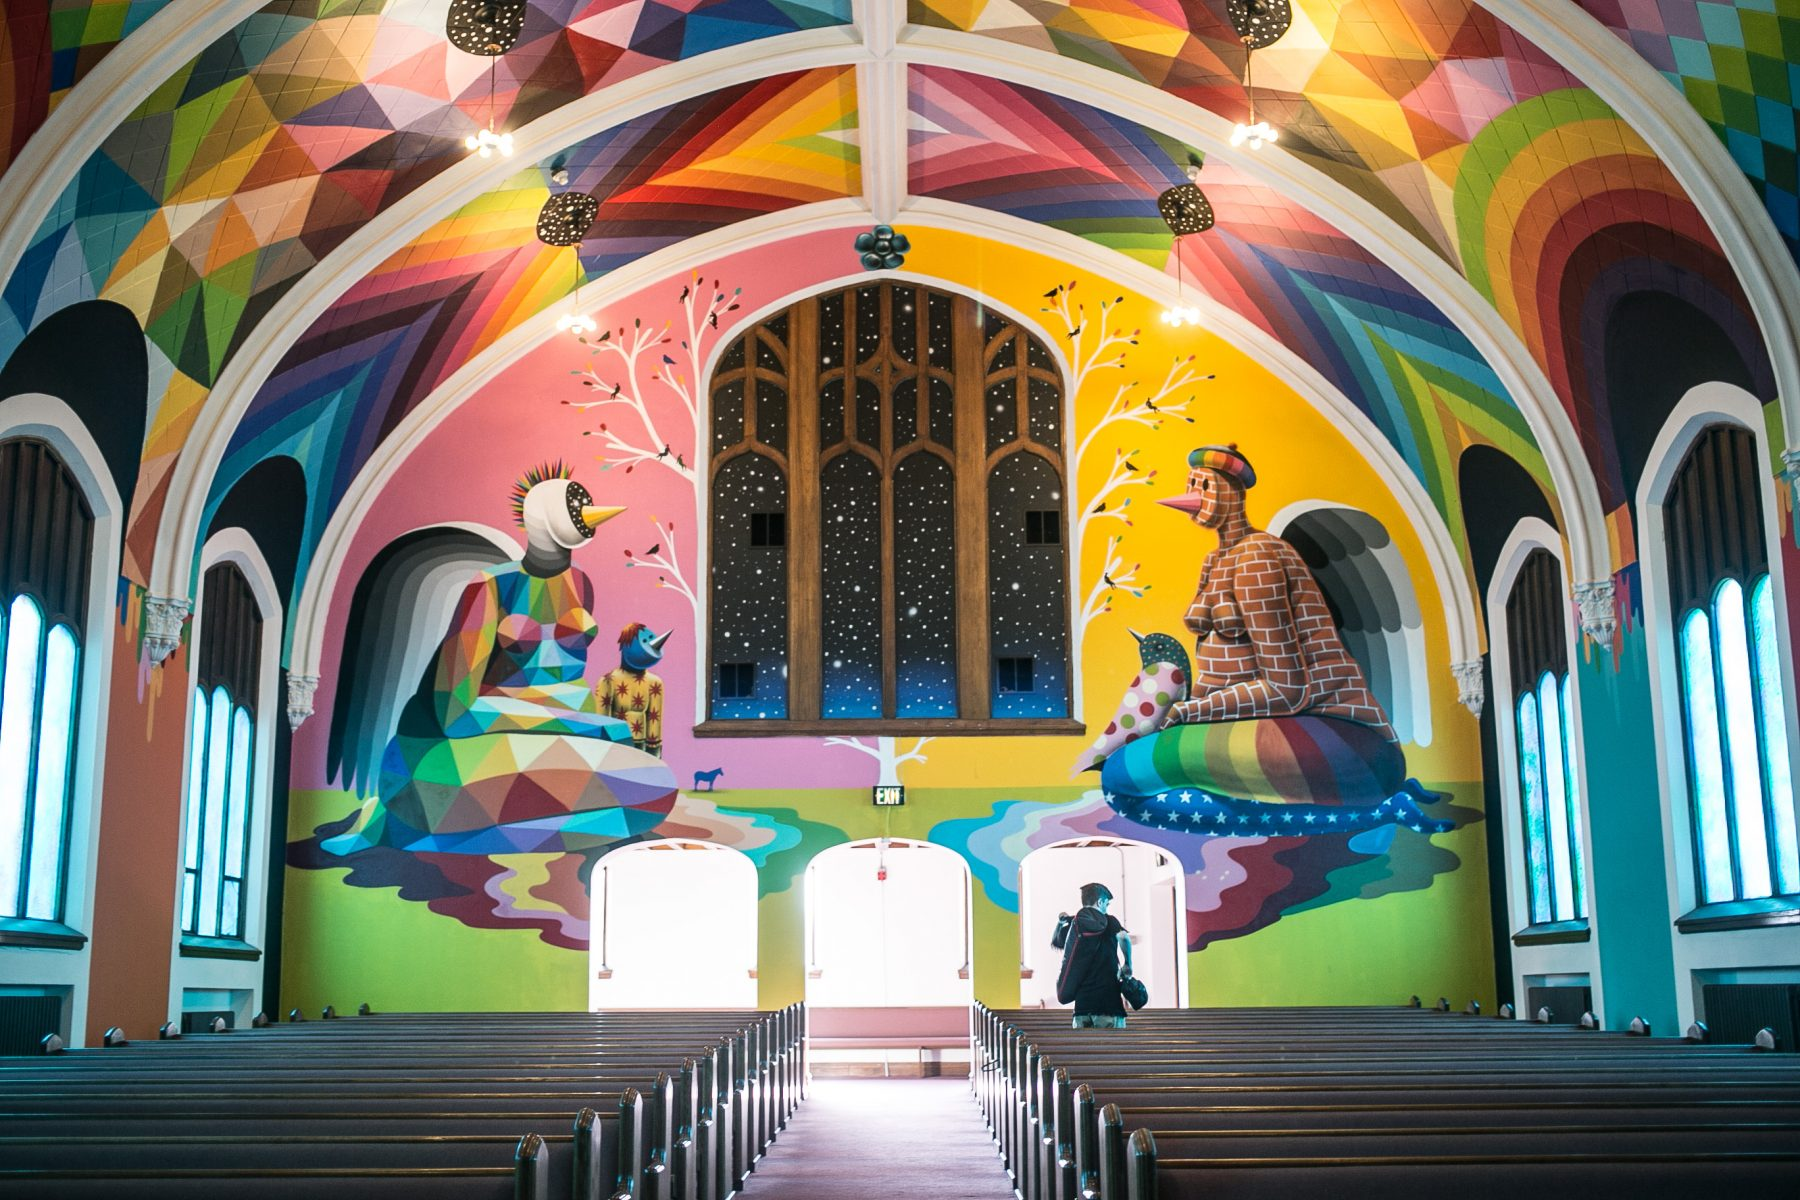 Okuda mural at International Church of Cannabis in Denver Colorado